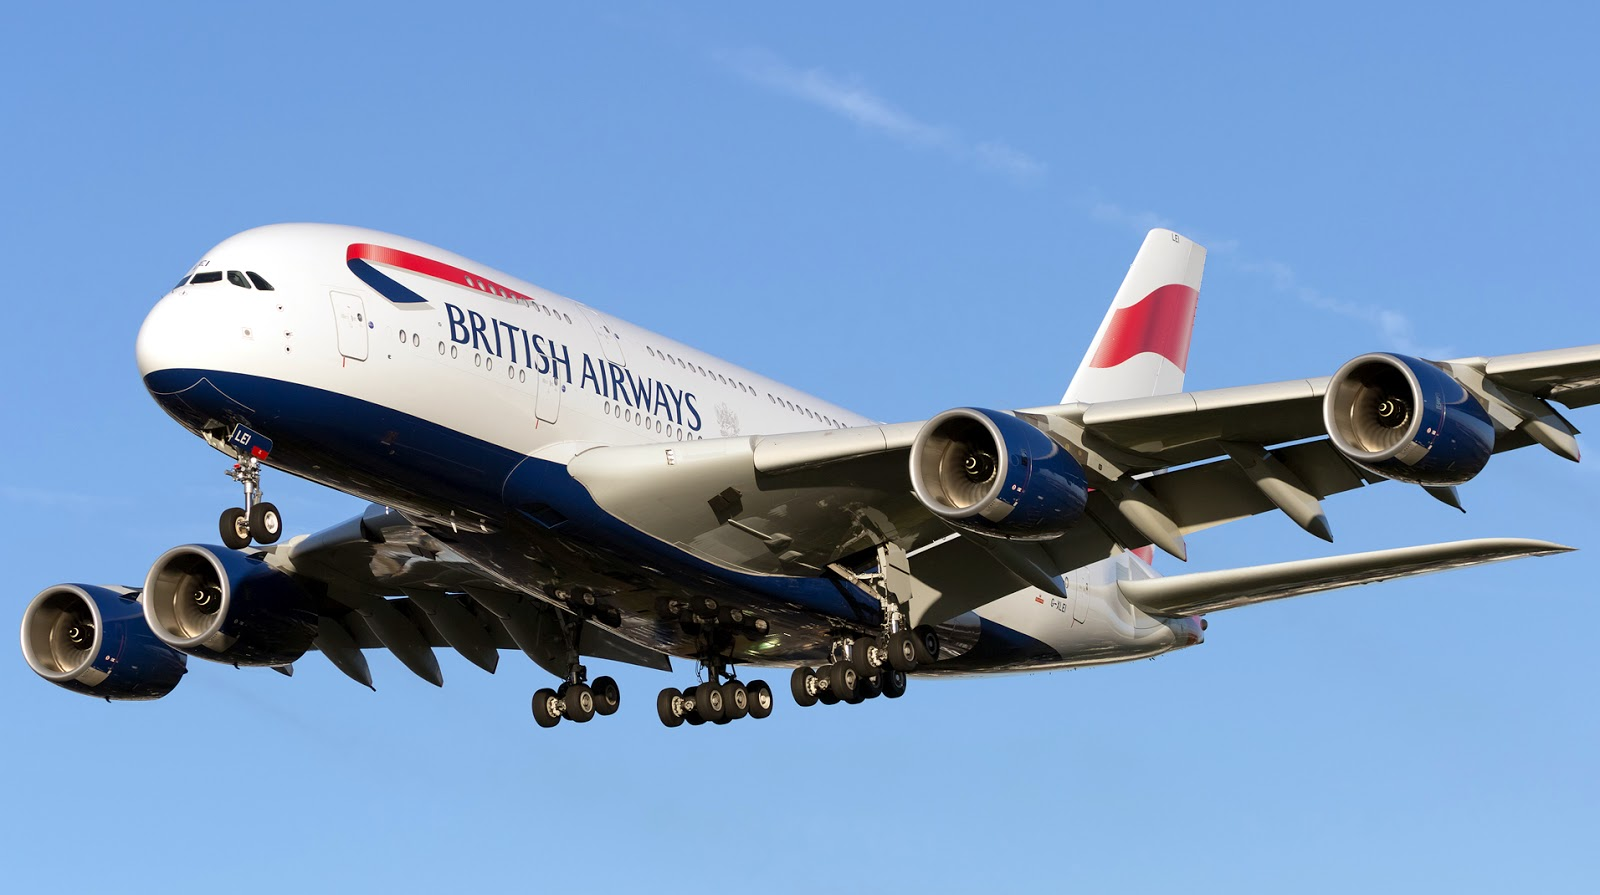 Airbus A380-800 of British Airways Landing Gear Retracted Down